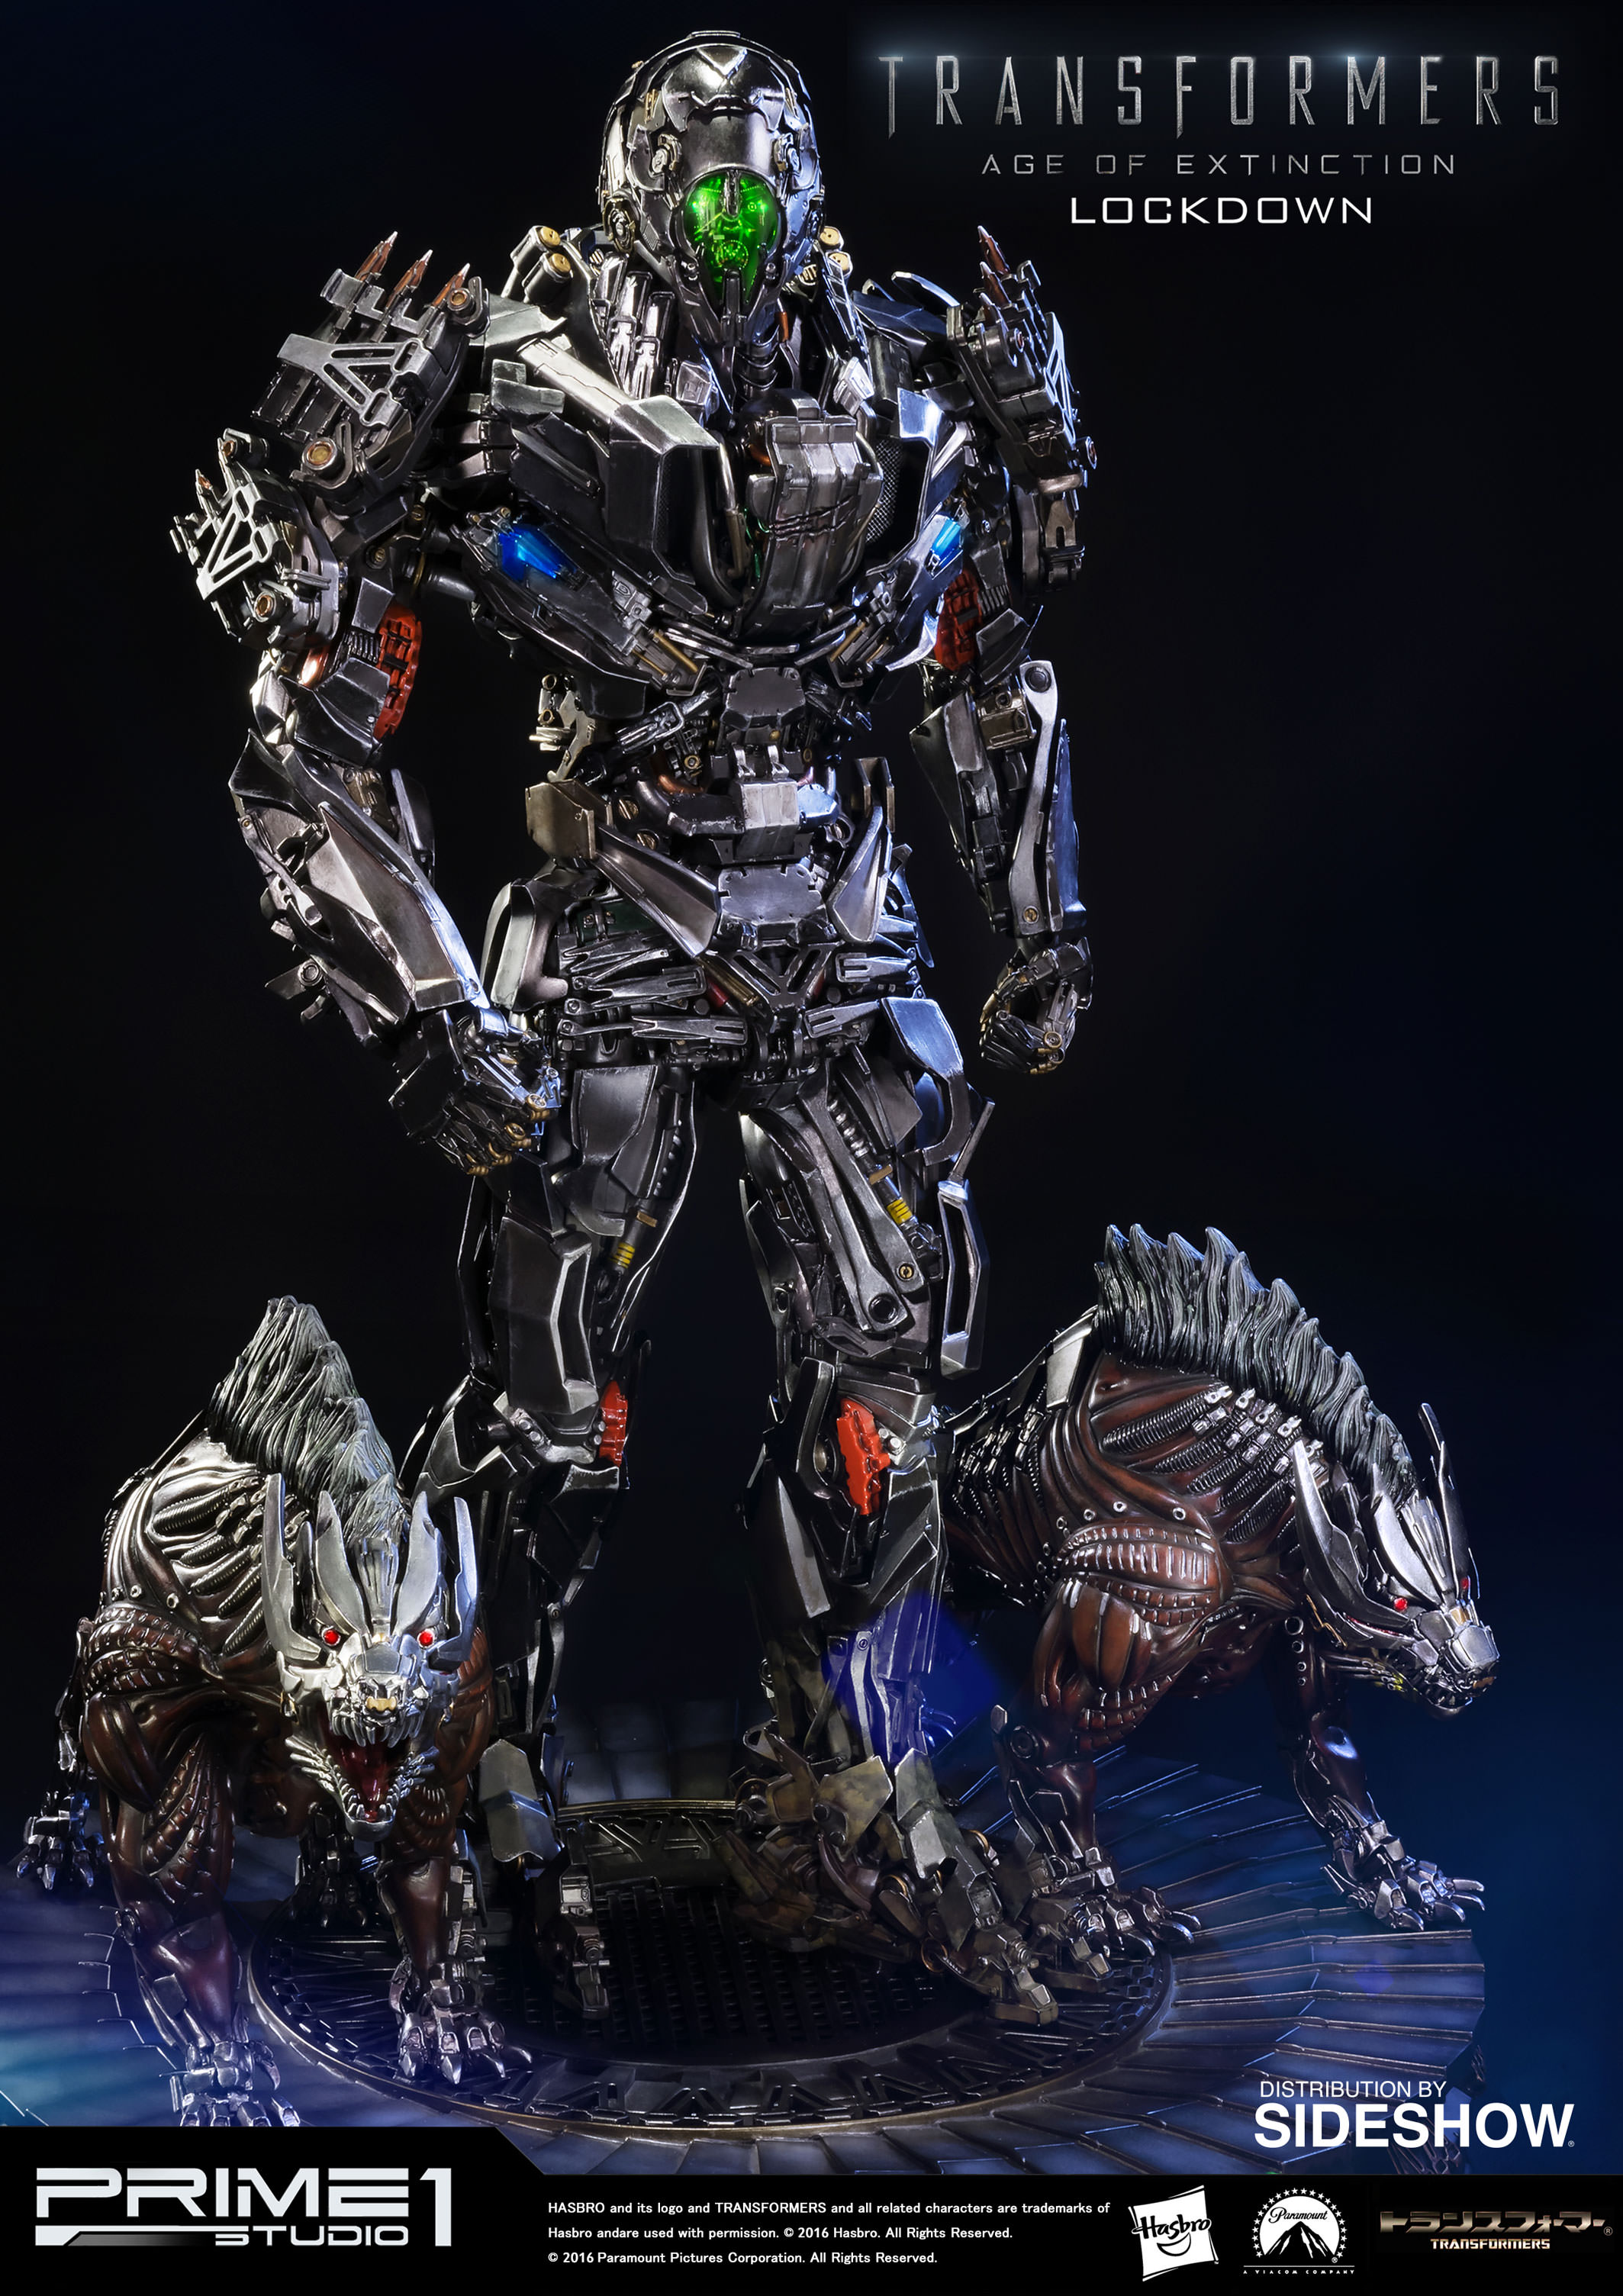 Transformers Lockdown Polystone Statue by Prime 1 Studio ...